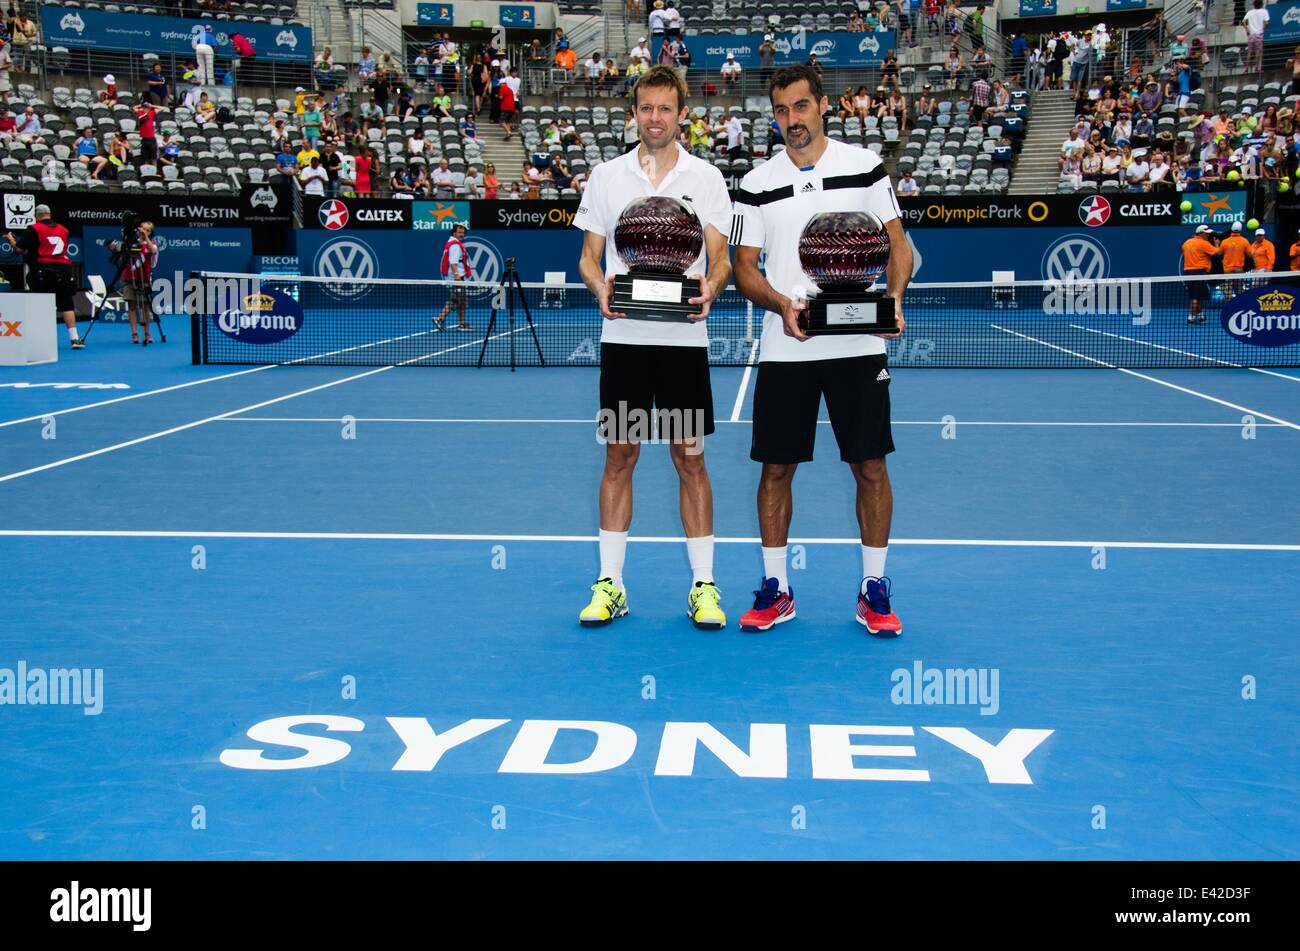 Apia International Sydney Tennis Tournament At The Olympic Park Centre